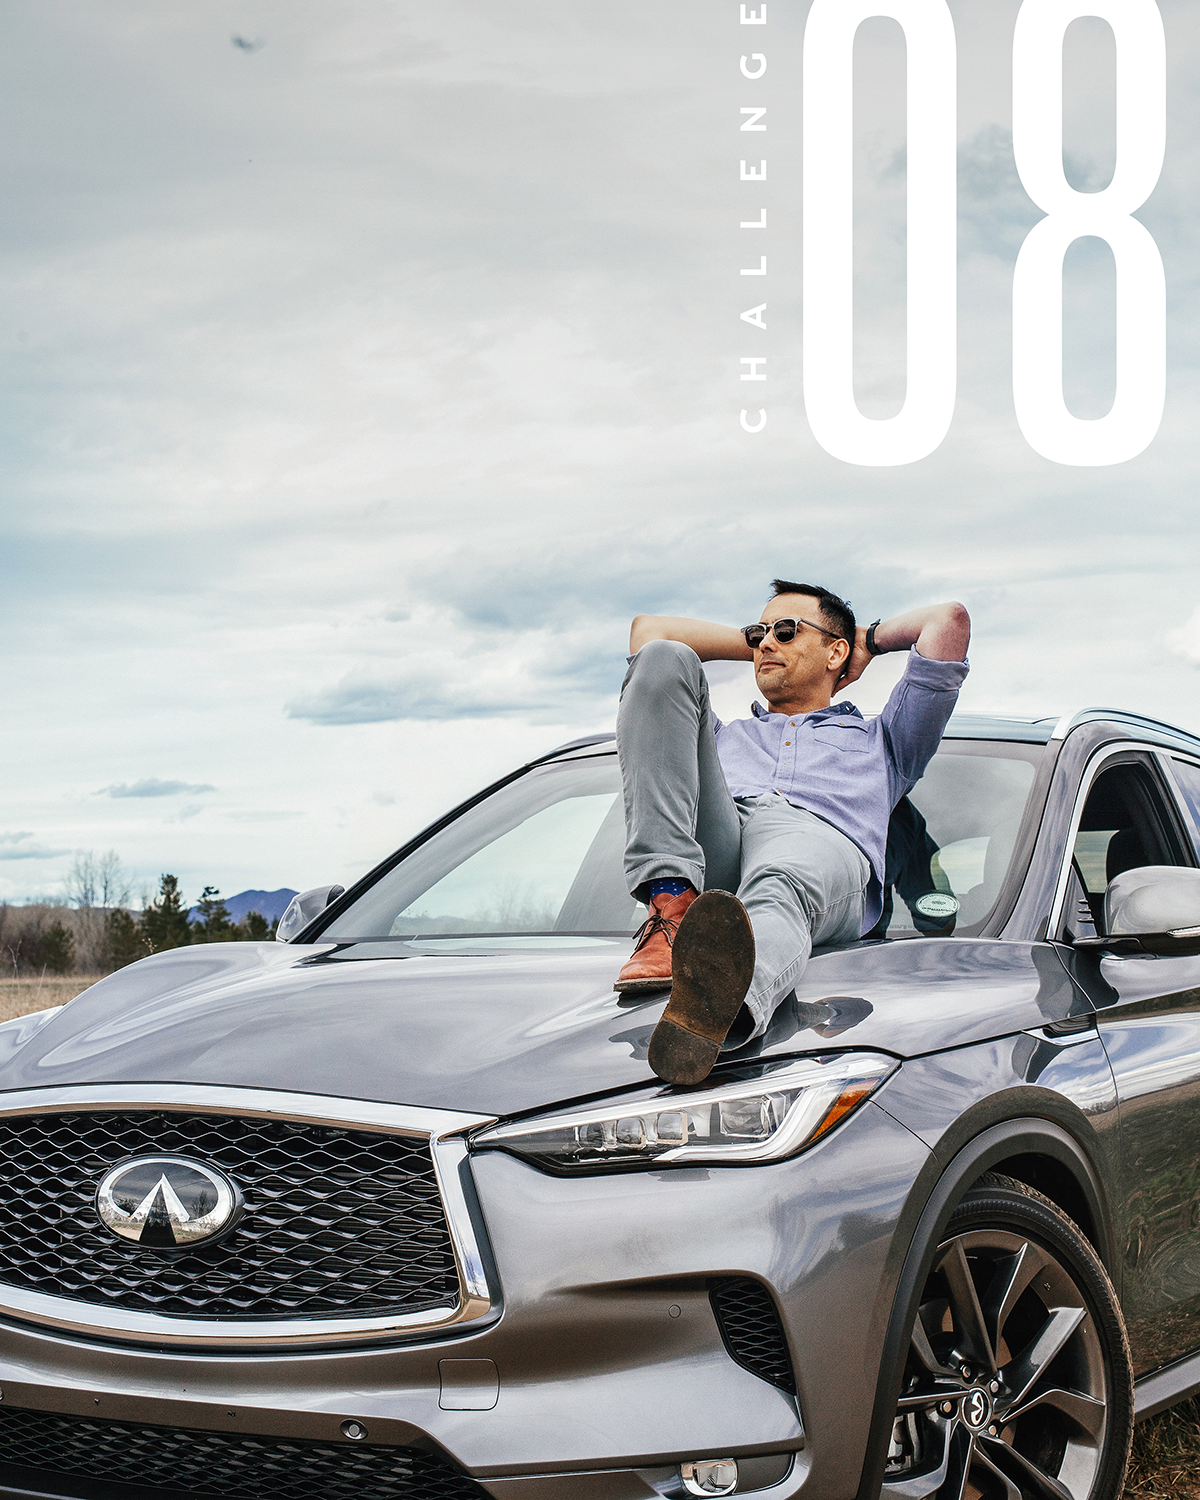 Pin By Infiniti Canada On Luxury Should Be Lived In Infiniti Vehicles Vehicles Luxury Sedan